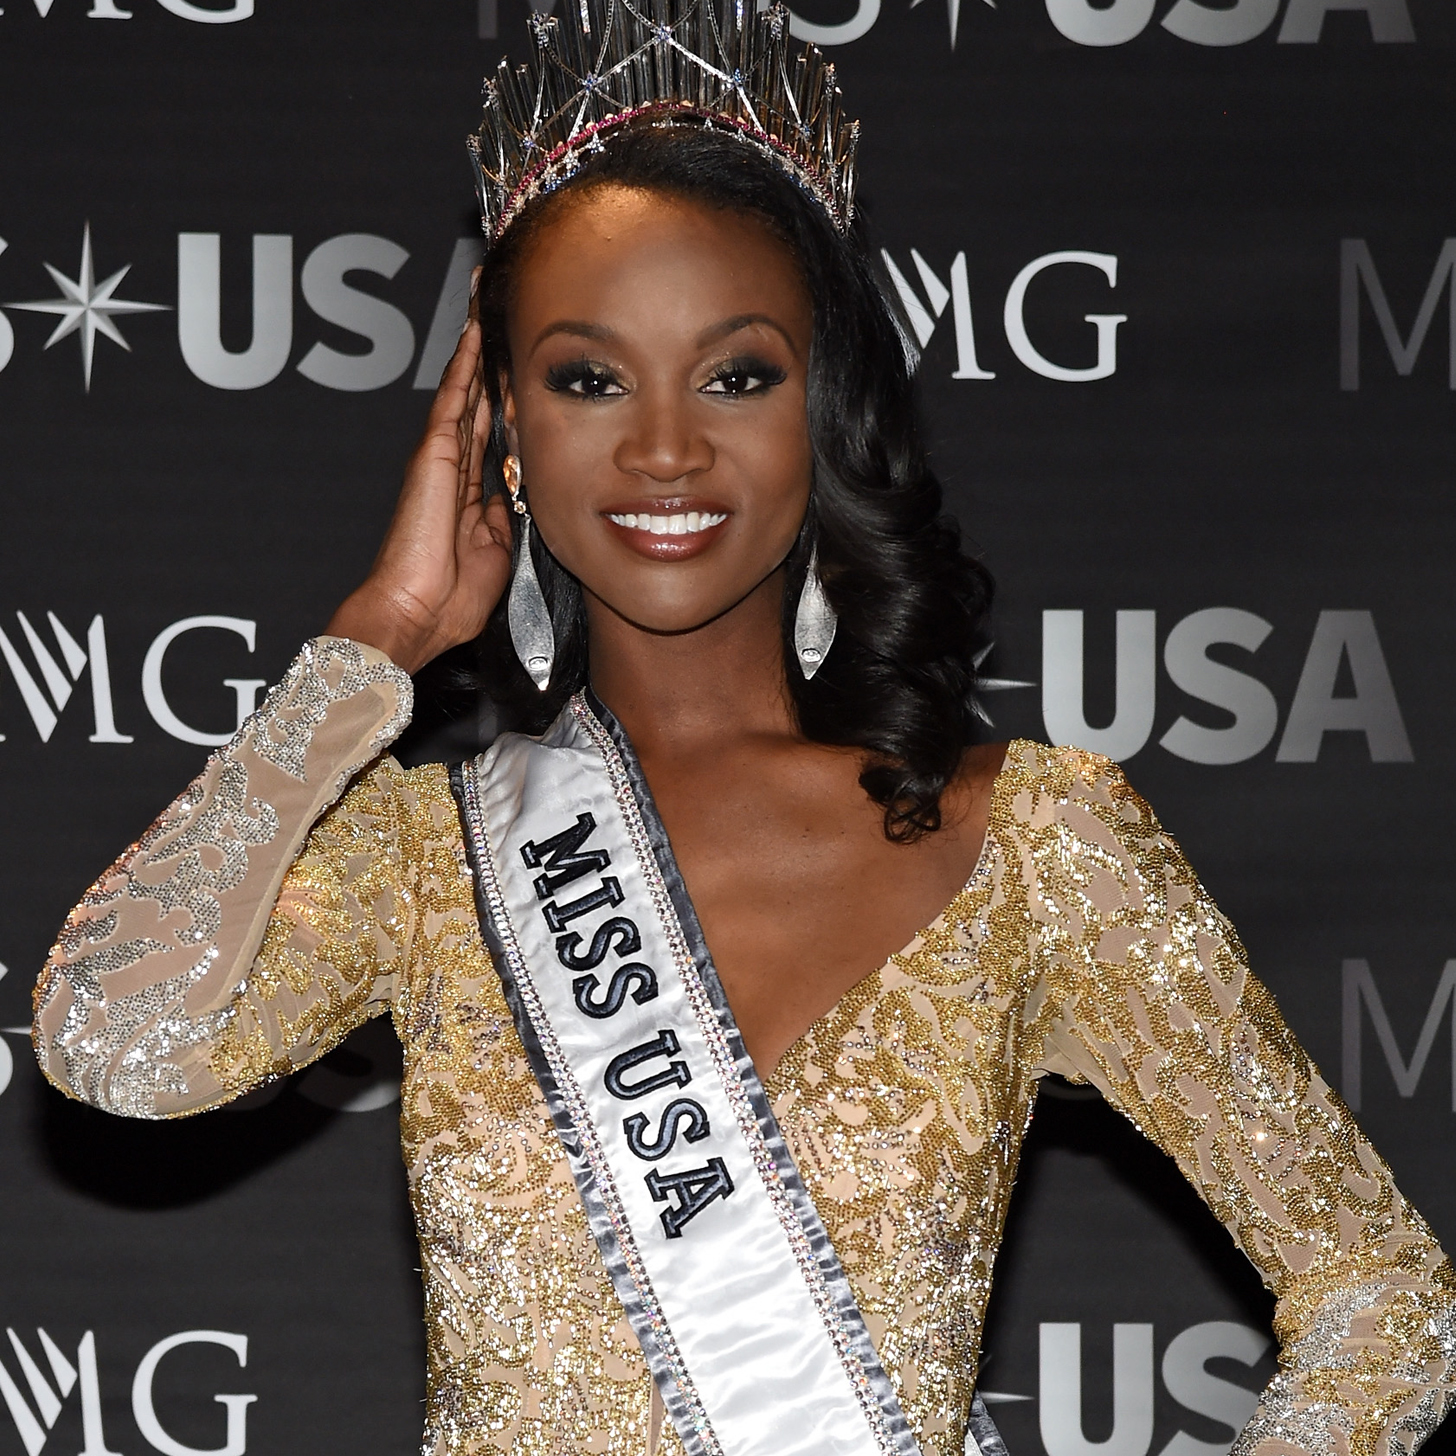 Barber Wilson Usa : Facts About Miss USA, Deshauna Barber, Everyone Should Know # ...